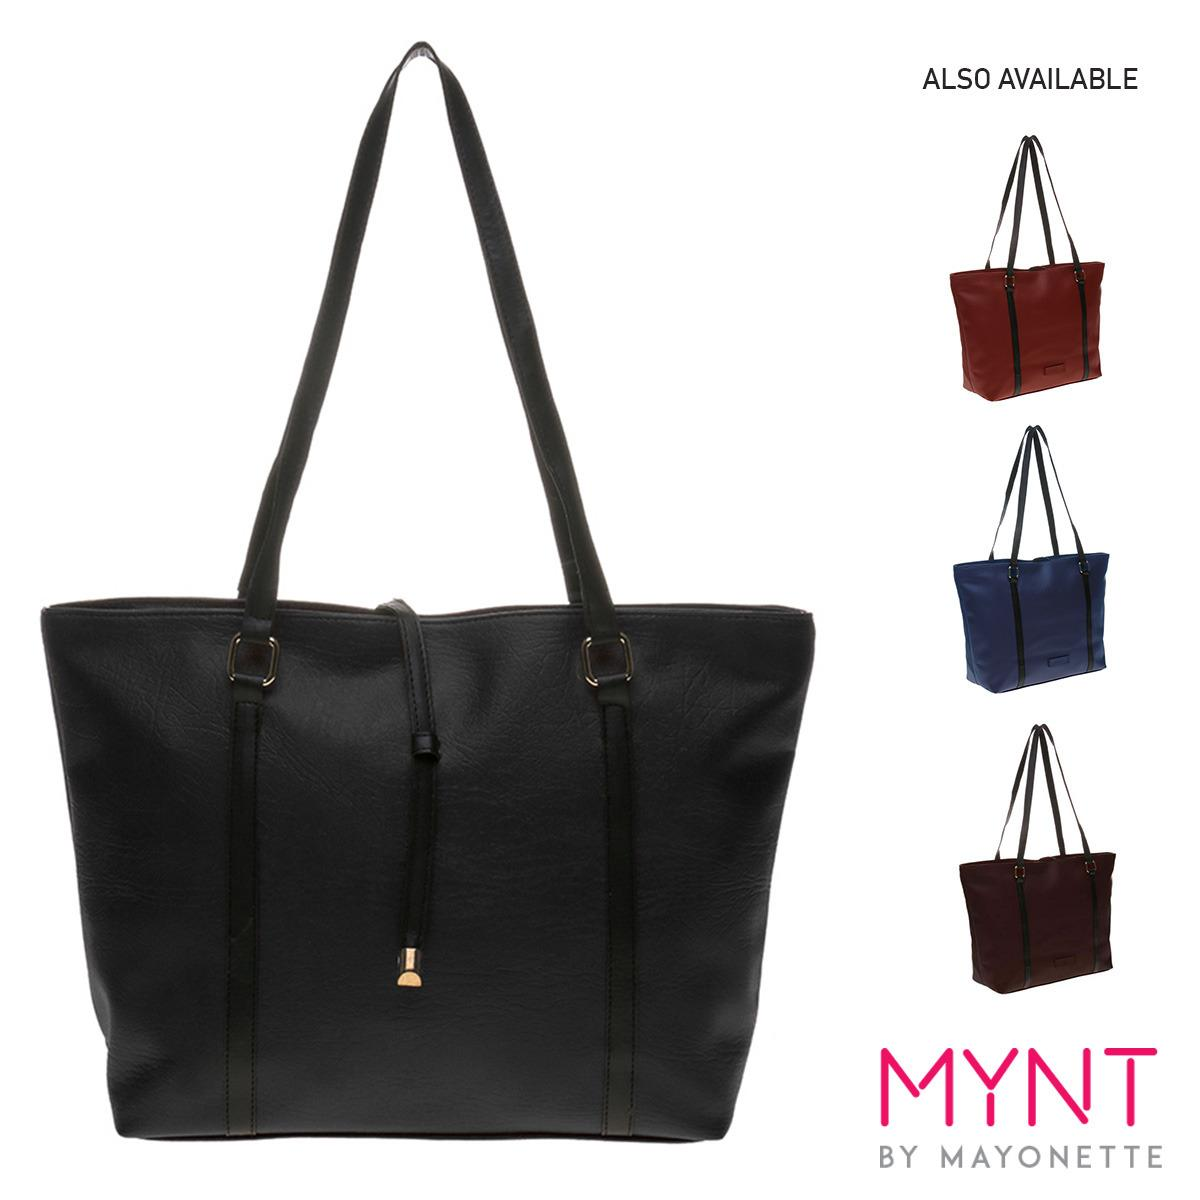 MYNT by Mayonette Tas Fashion Wanita Totes Shoulder Casual PU Leather Best Seller Korean Style Women Bags Largo Totes - Black (Hitam)